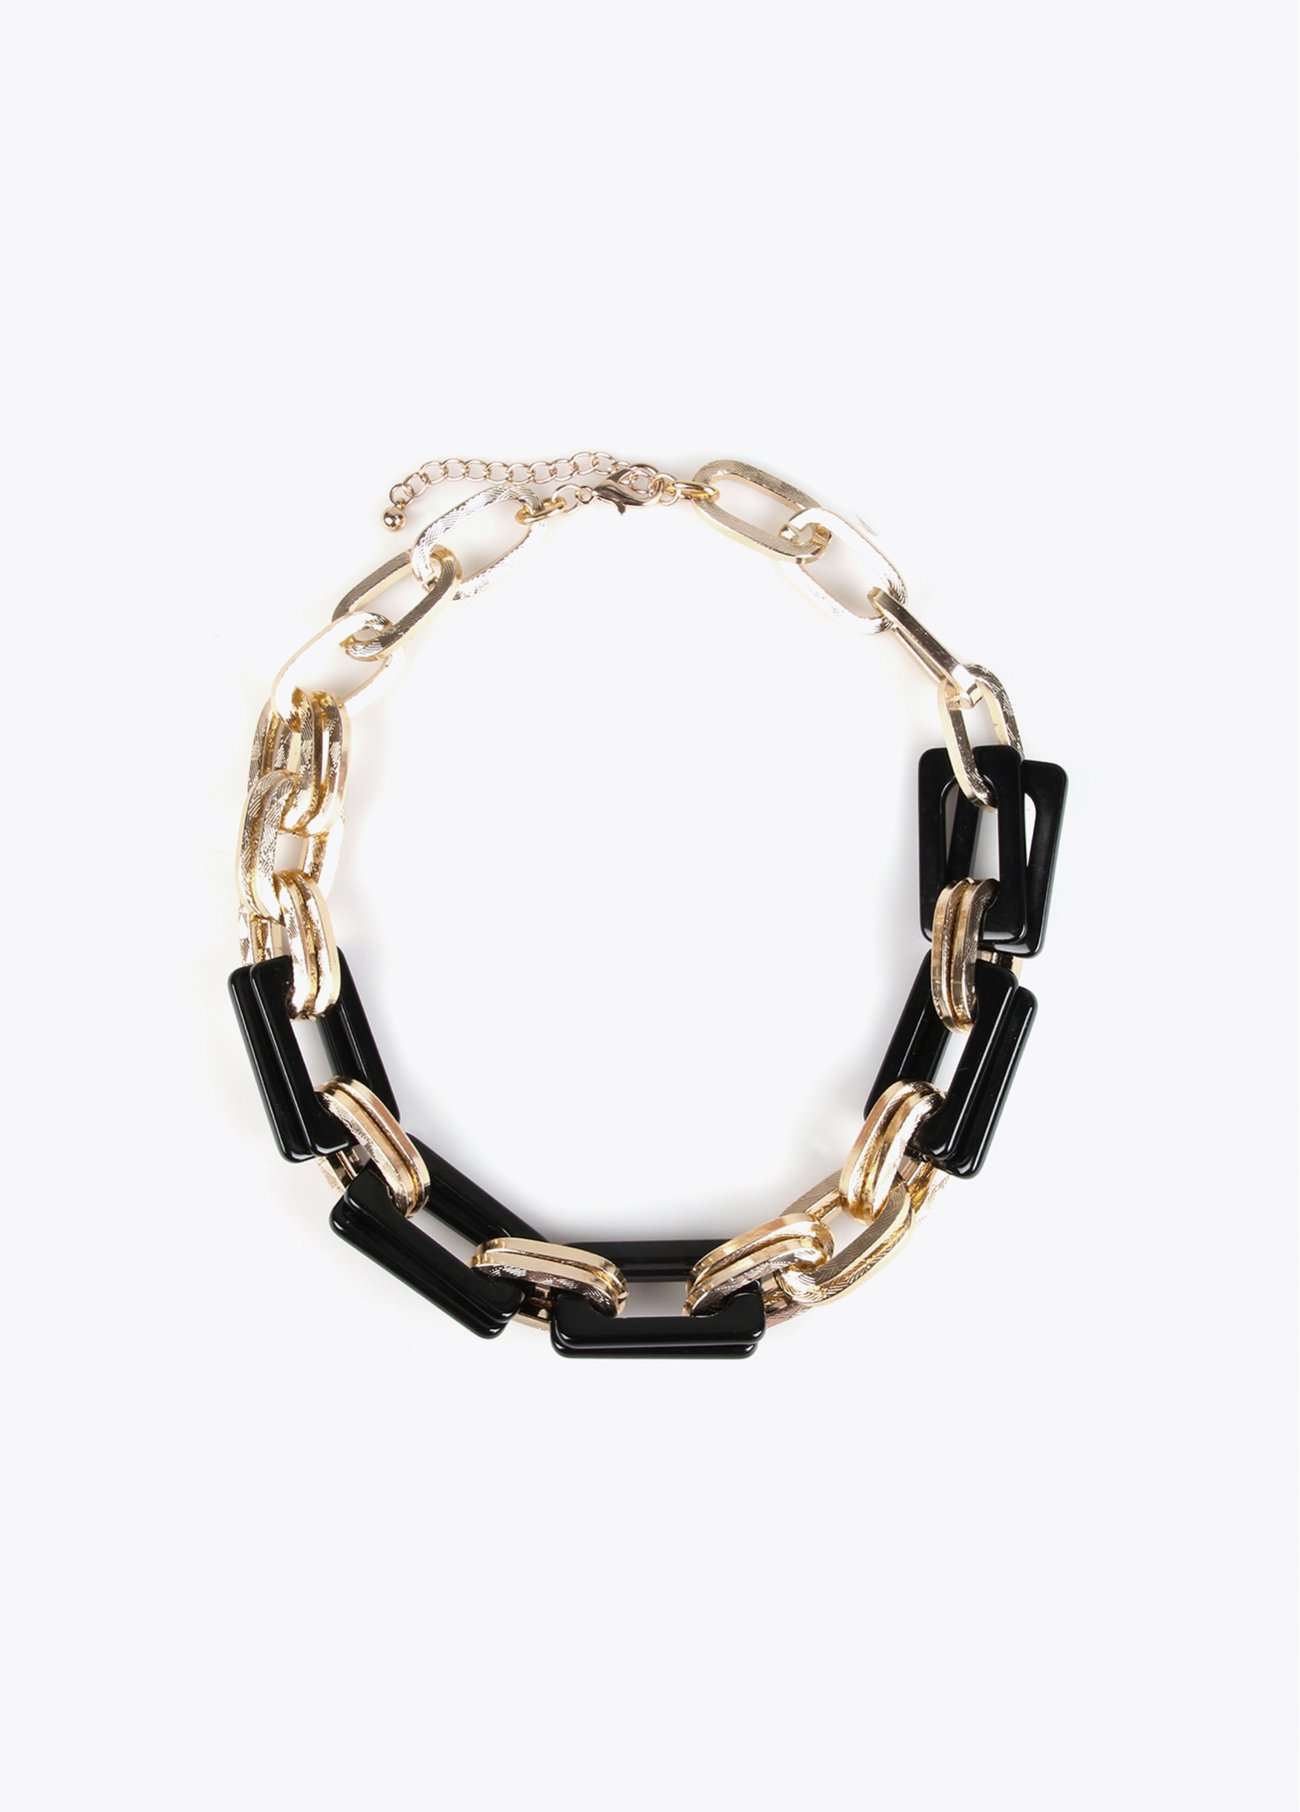 Short necklace with golden and black acr